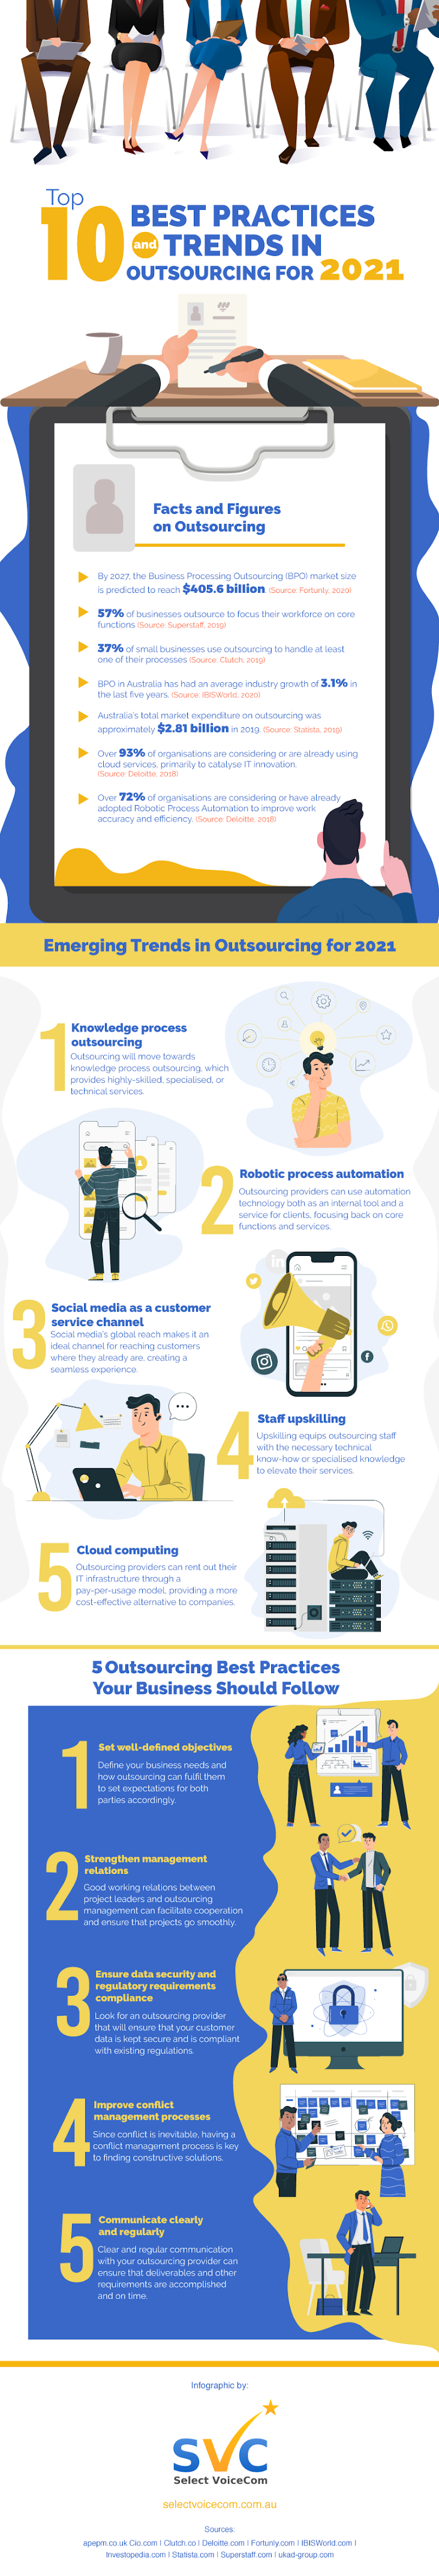 Top 10 Best Practices and Trends in Outsourcing for 2021 #infographic #Business #infographics #Trends #Technology #Infographic